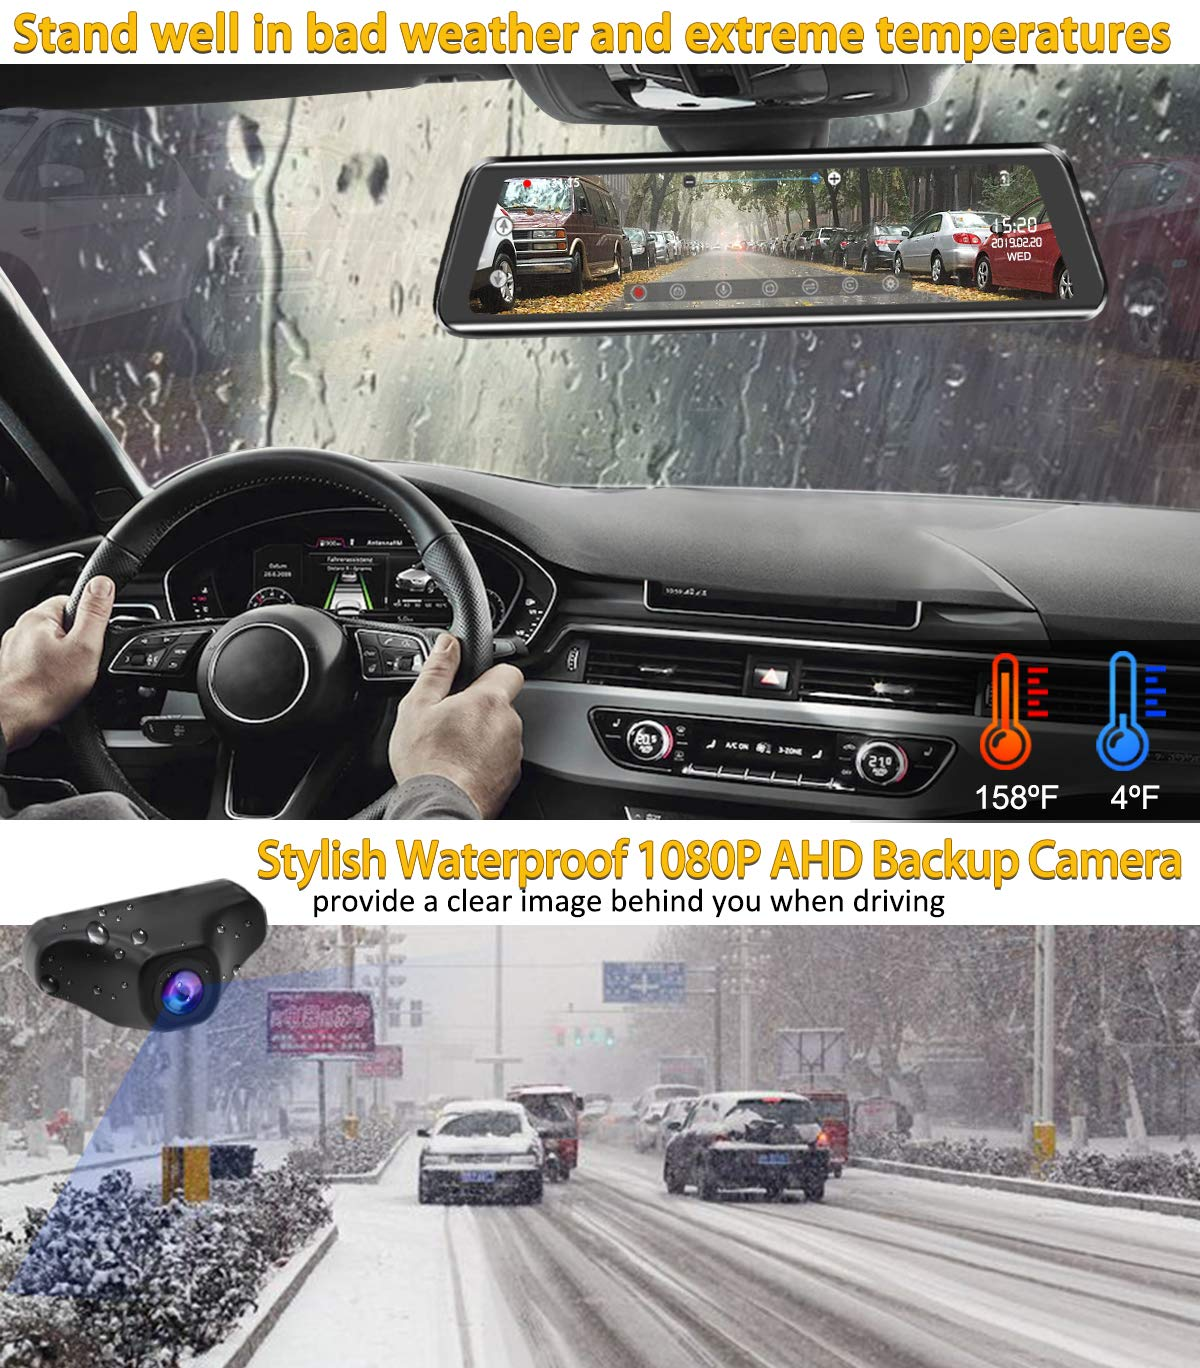 Mirror Dash Cam 9.88 inch Full Touch Screen Car Backup Camera Dual Recording HD Front 1080P 170° Wide Angle 1080P Rear View Camera 150° URVOLAX Night Vision,24-Hour Parking,GPS, SD Card by URVOLAX (Image #5)